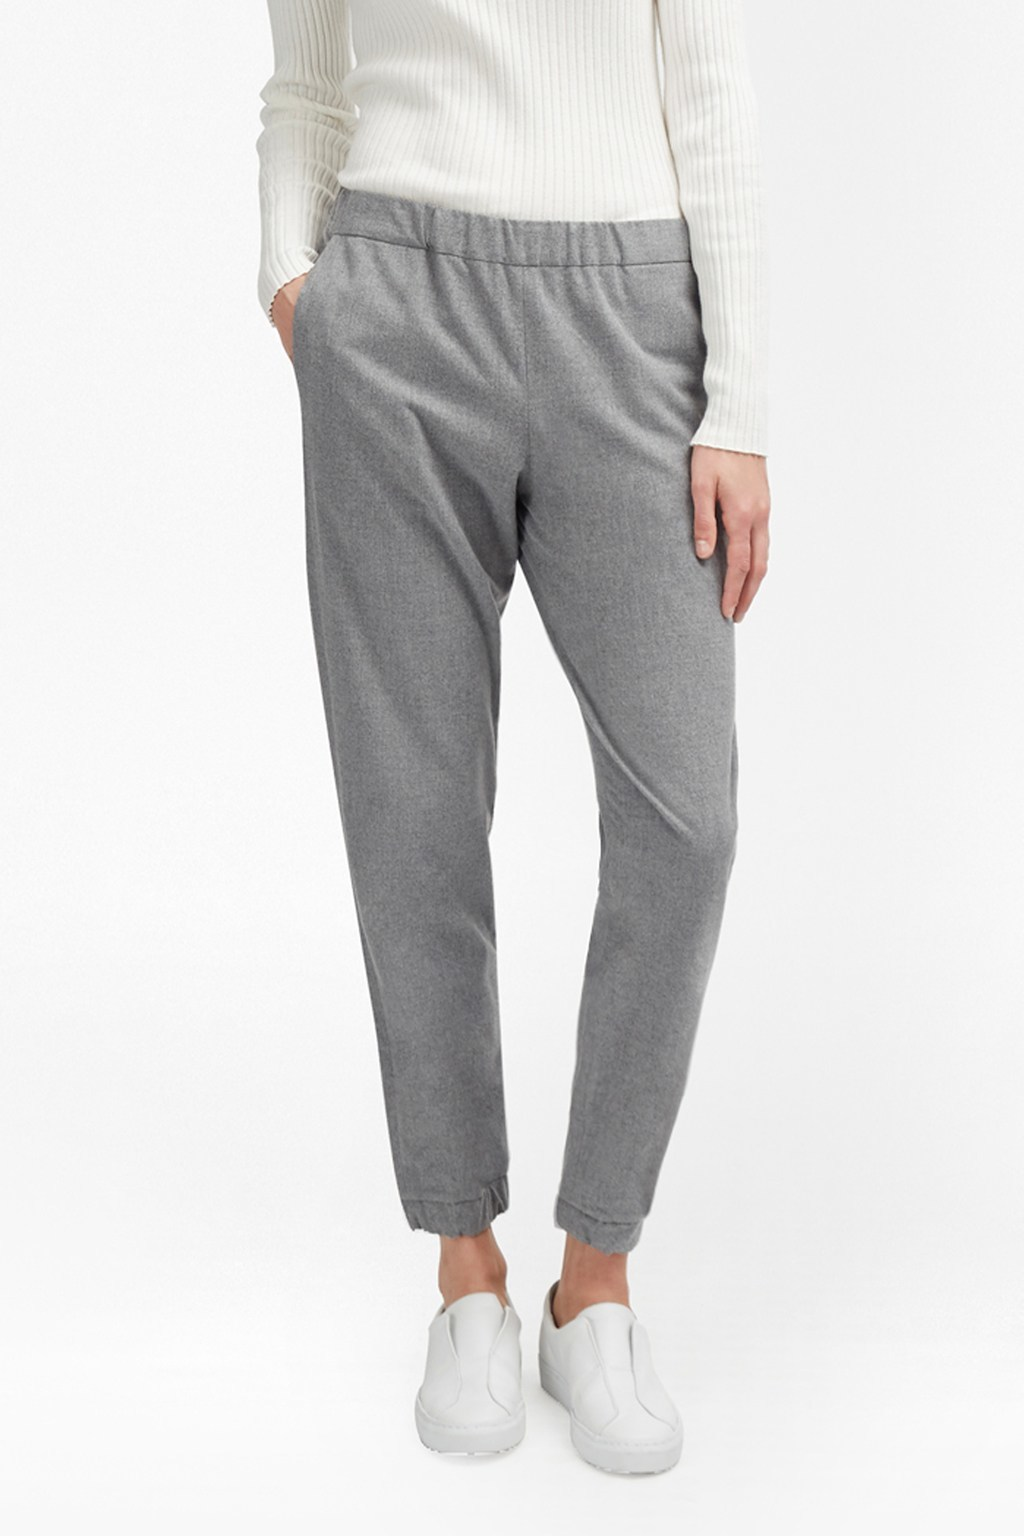 Winter Flannel Jogger Trousers Light Grey Mel - pattern: plain; waist detail: elasticated waist; style: peg leg; waist: mid/regular rise; predominant colour: mid grey; occasions: casual, creative work; length: ankle length; fibres: polyester/polyamide - stretch; fit: tapered; pattern type: fabric; texture group: woven light midweight; pattern size: standard (bottom); season: a/w 2016